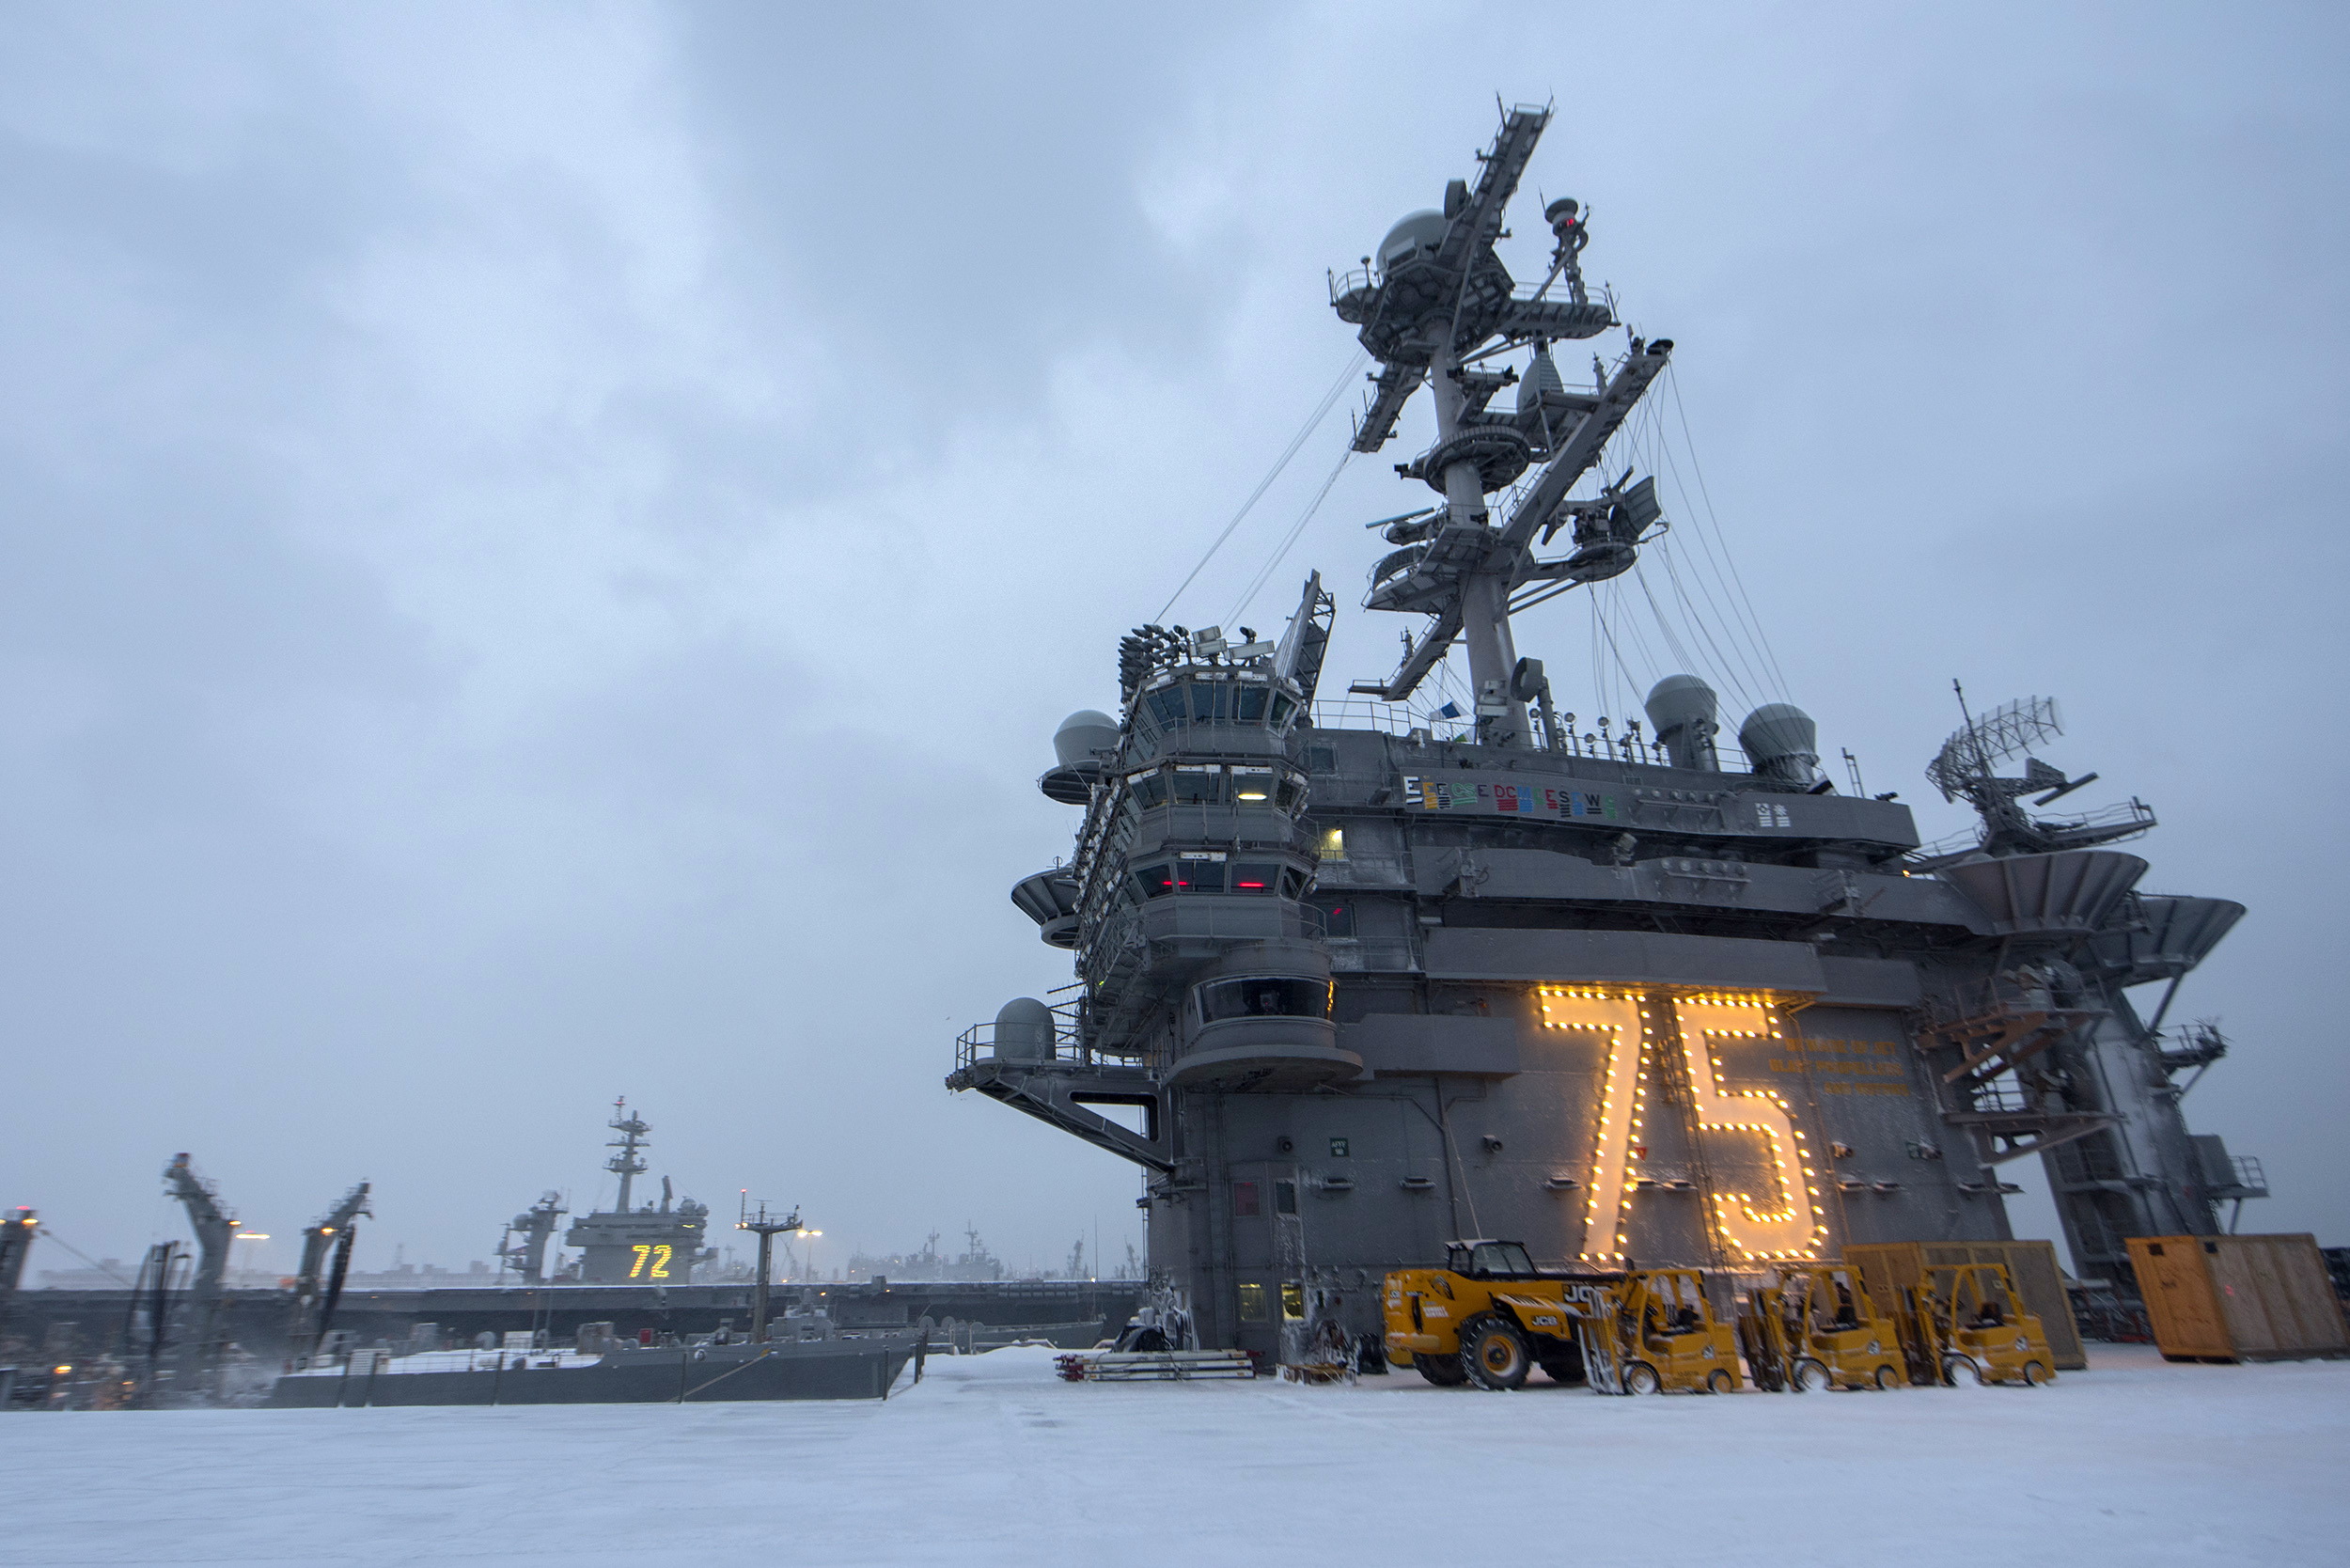 The aircraft carriers USS Harry S. Truman and USS Abraham Lincoln are blanketed with snow following blizzard-like conditions. (Scott Swofford/Navy)